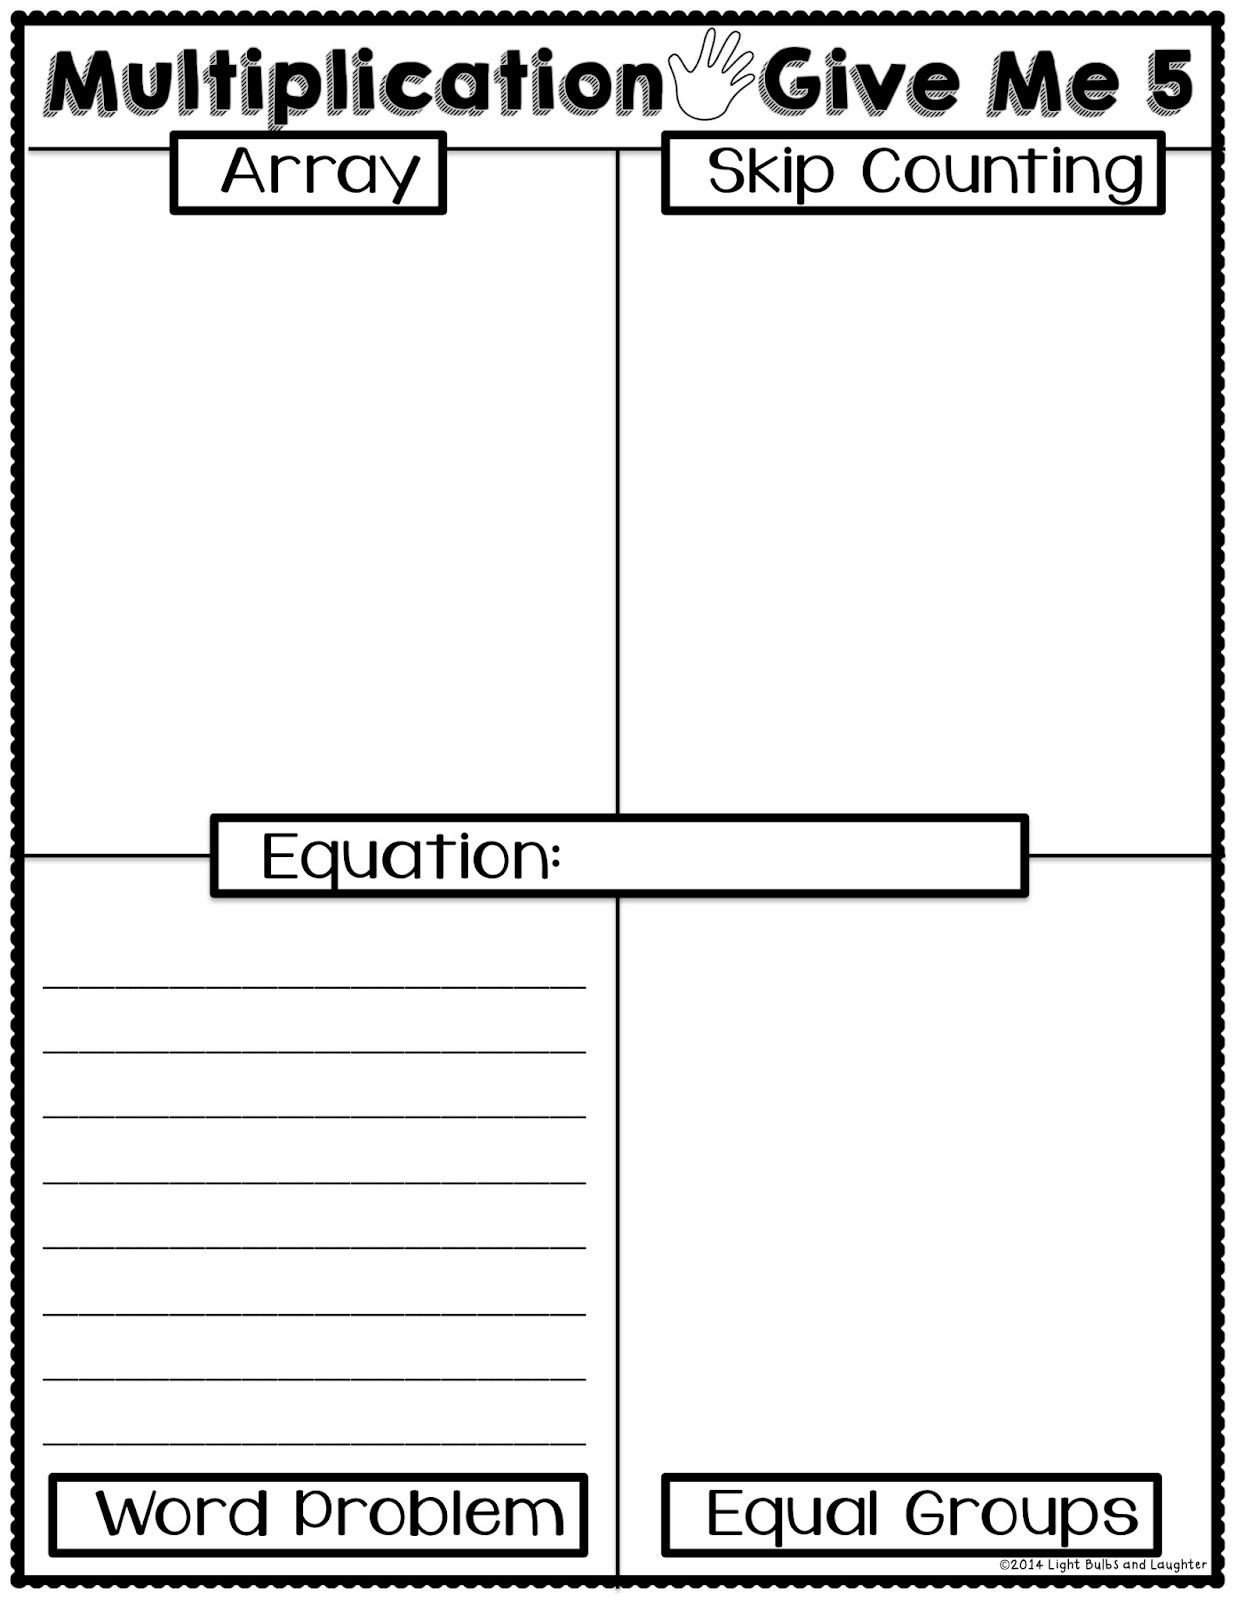 Equal Groups Worksheets 3rd Grade Light Bulbs and Laughter Multiplication Give Me 5